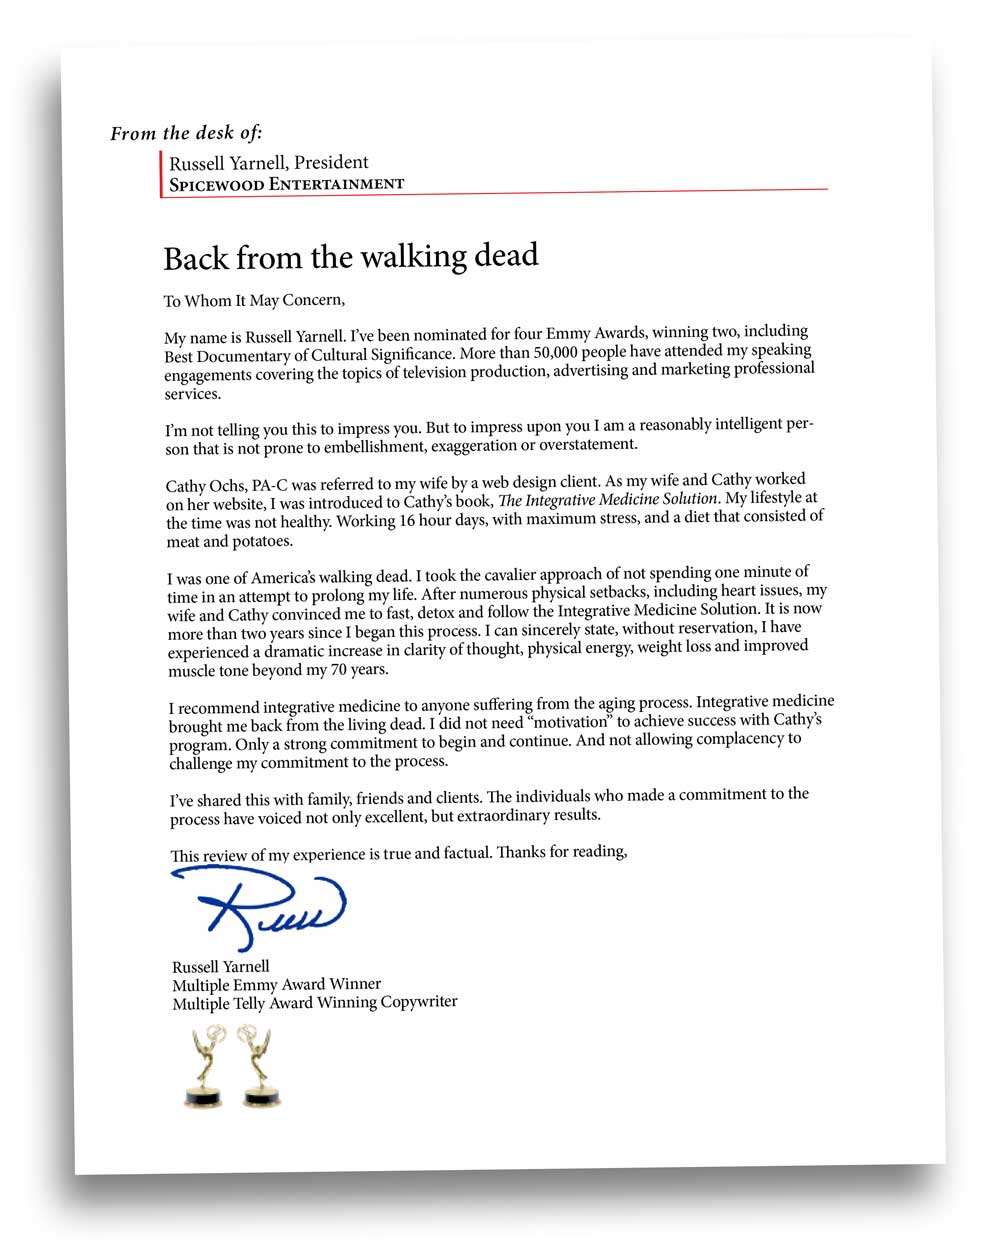 Back from the walking dead, endorsement letter of cathy ochs, pa-c, impaa, redding integrative medicine